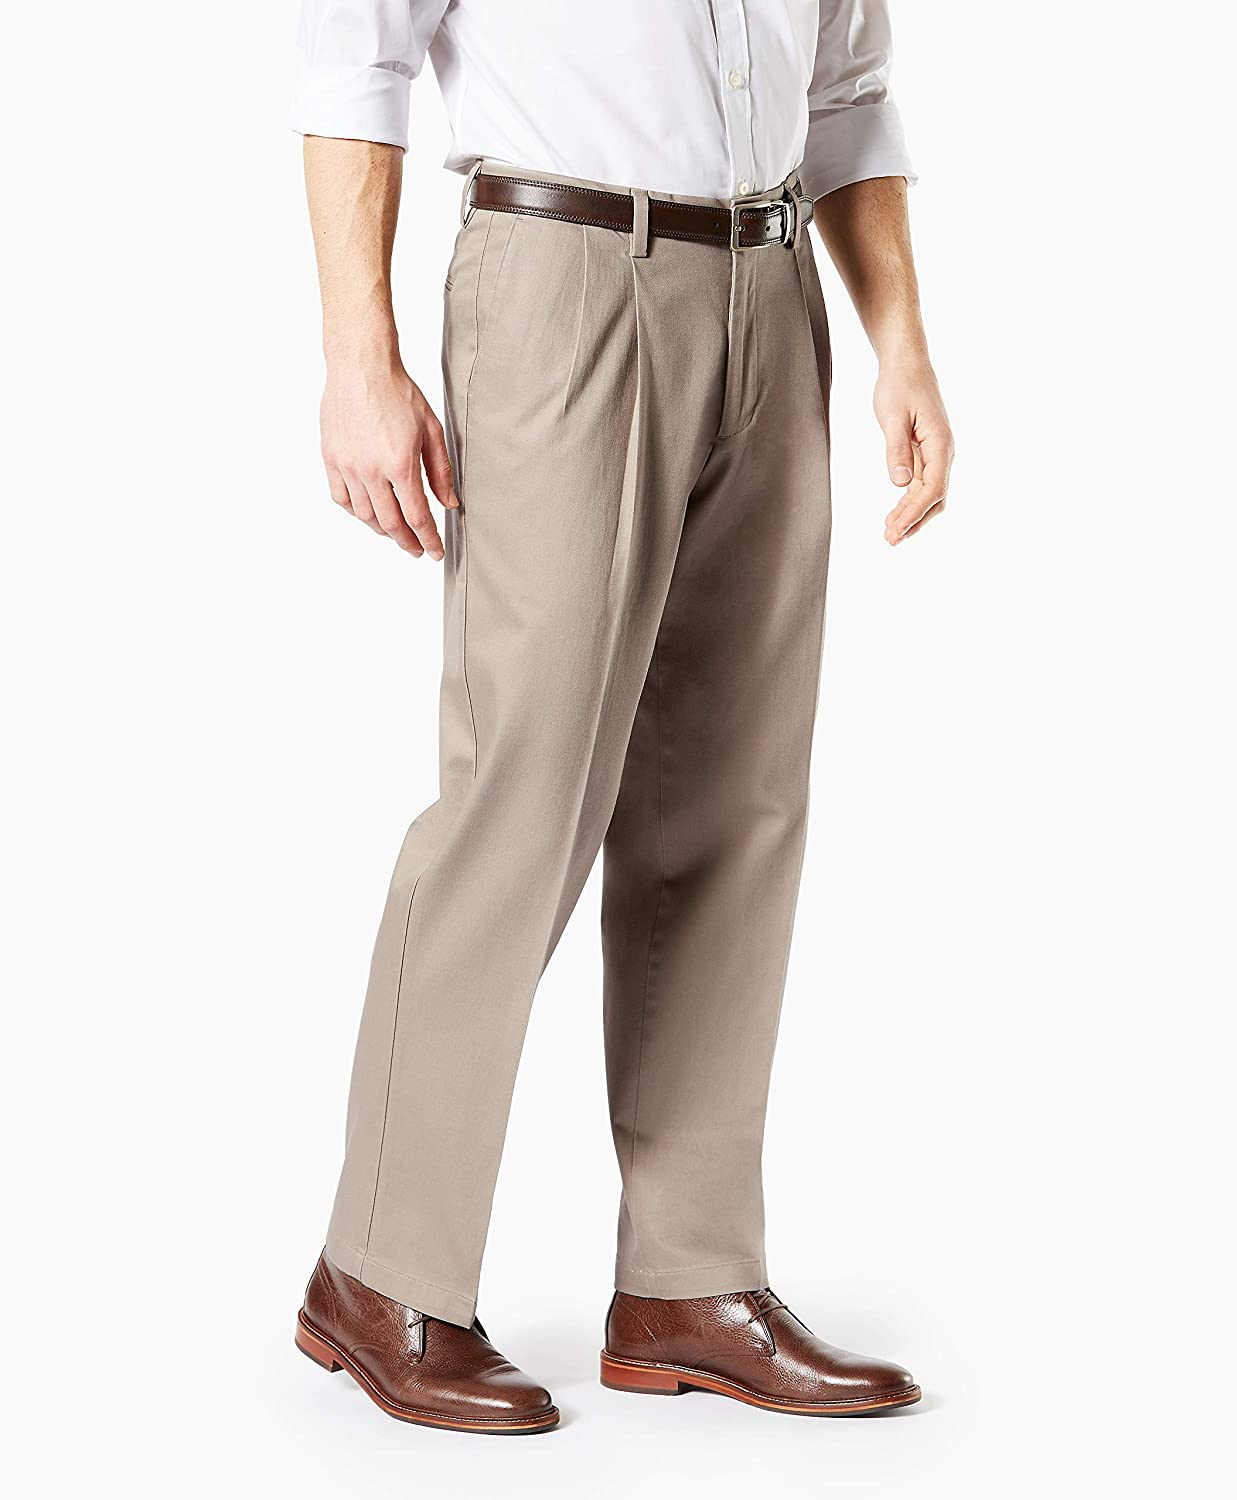 Dockers Mens Relaxed Fit Signature Khaki Lux Cotton Stretch Pants Pleated